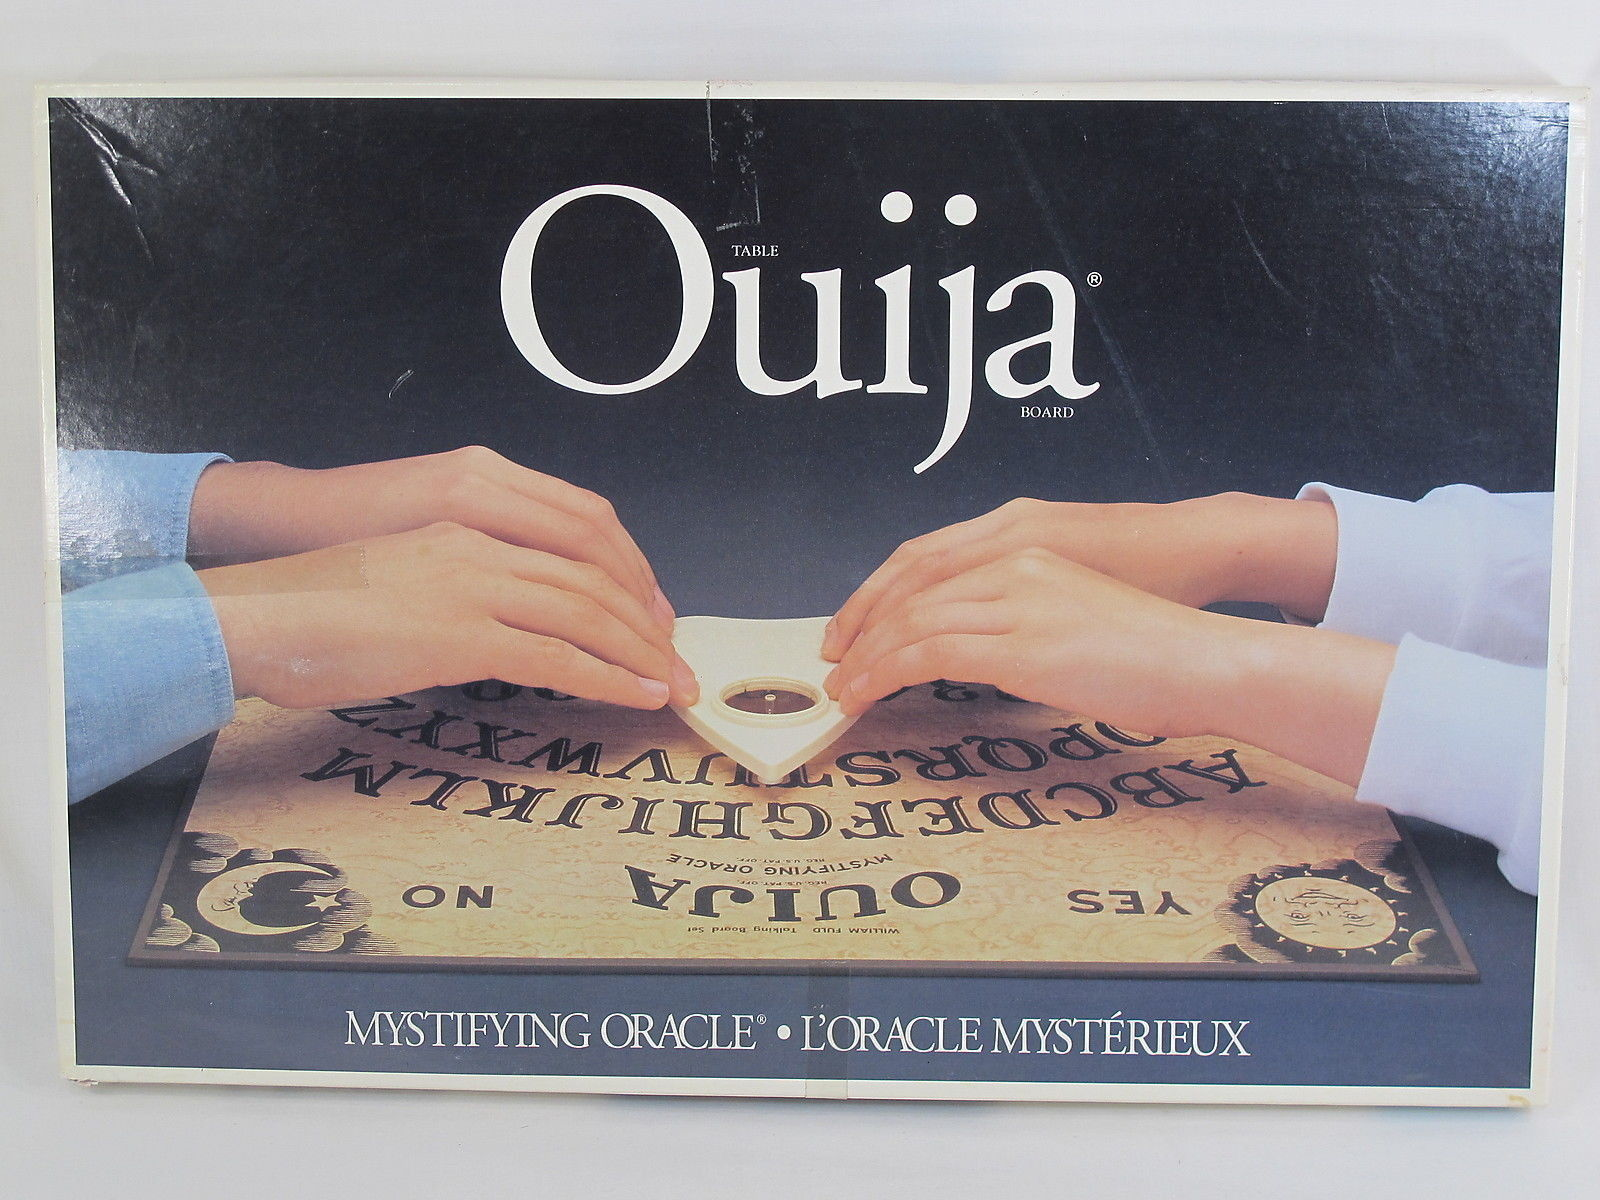 Primary image for Ouija 1992 Hardboard William Fuld Parker Brothers 100% Complete Excellent